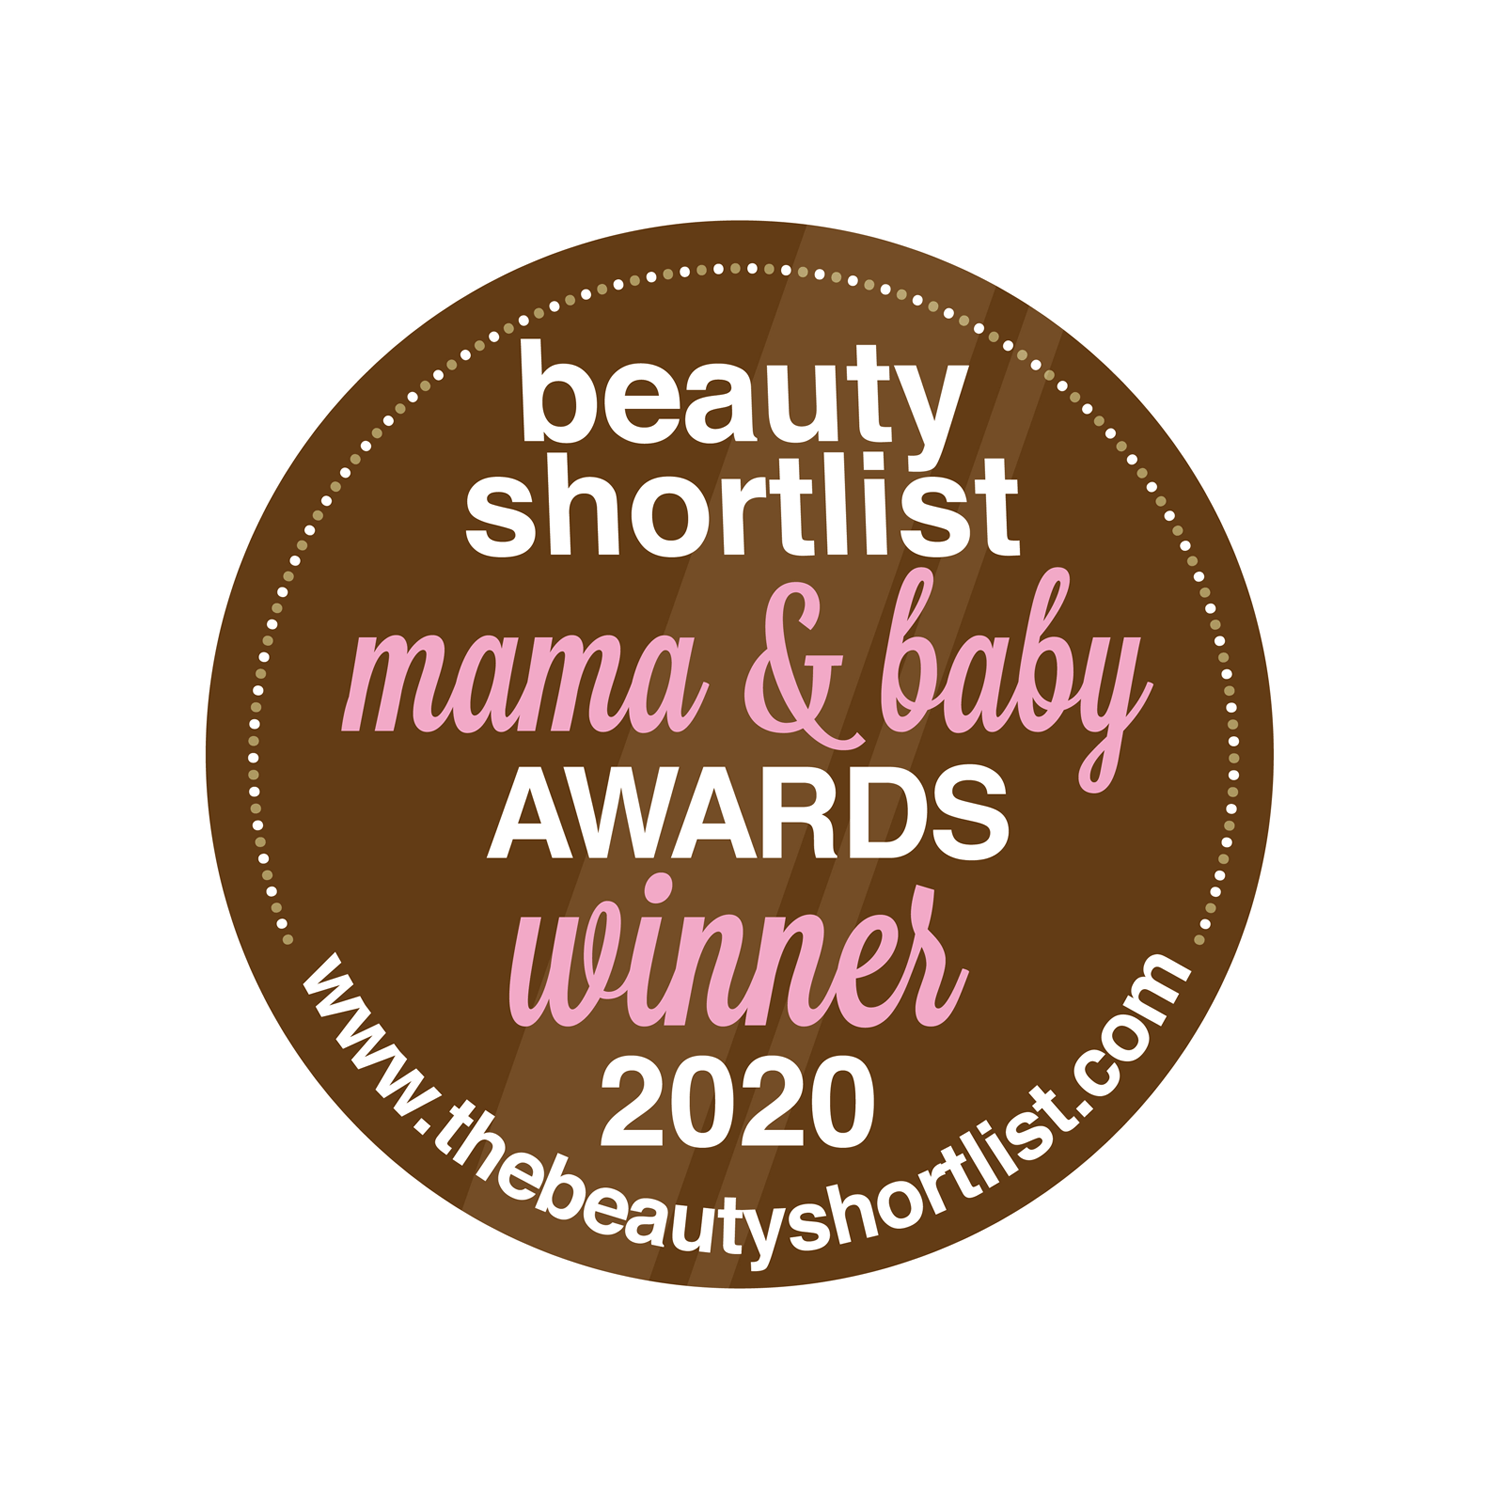 Best Pillow Mist Beauty Shortlist Mama and Baby Awards Winner 2020 - 3-in-1 Soul Mist - The Universal Soul Company